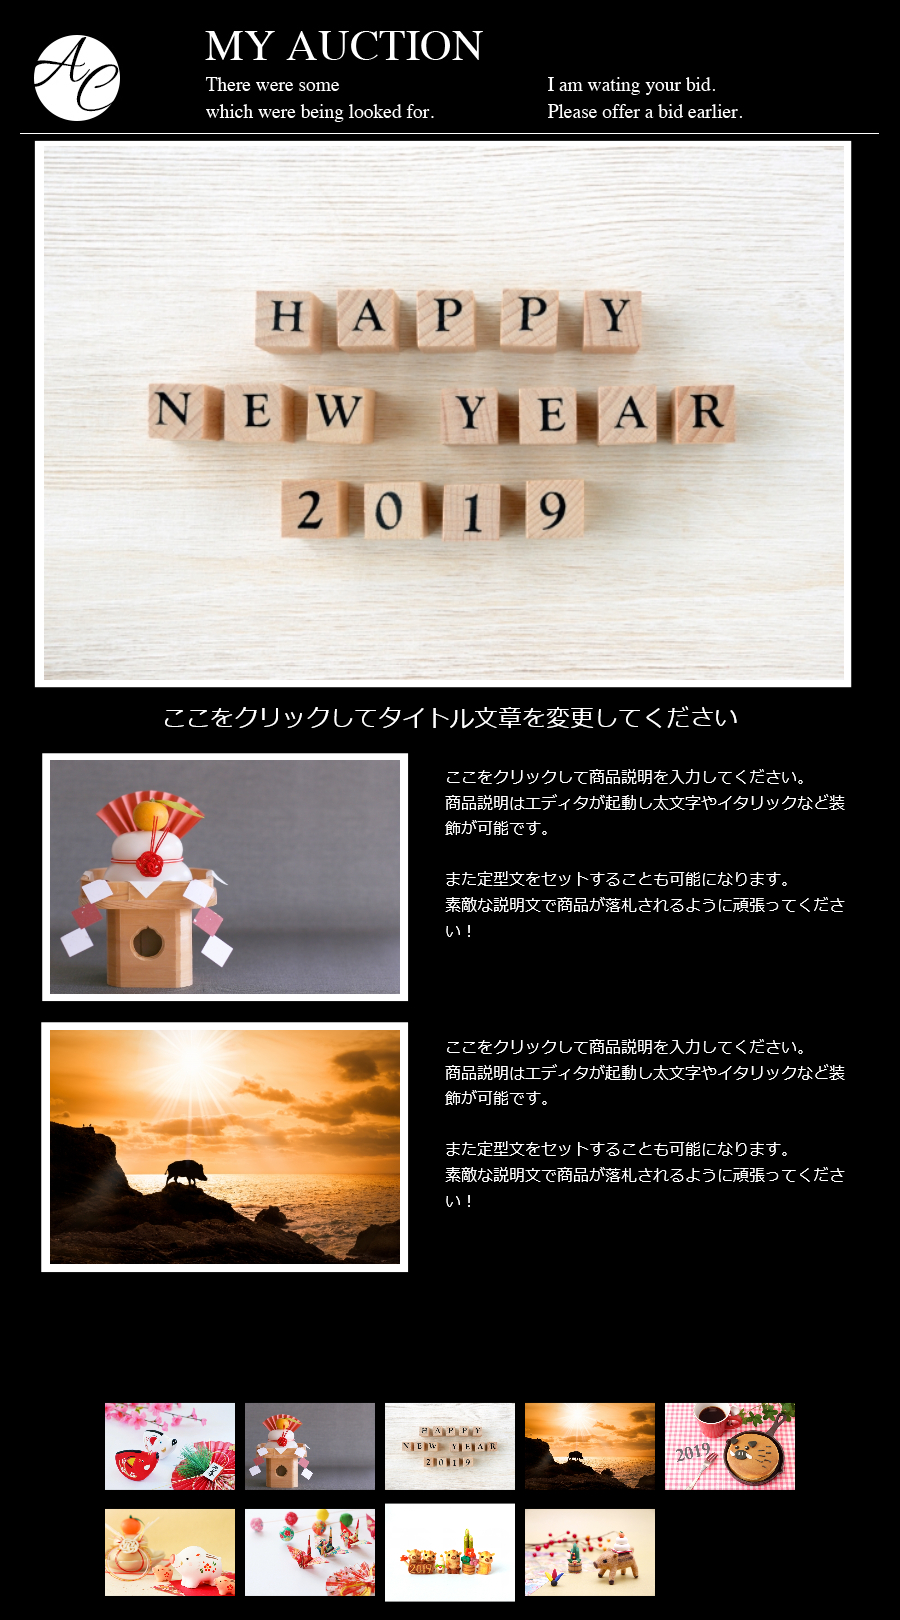 a happy new year homepagestyle template ヤフーオークション